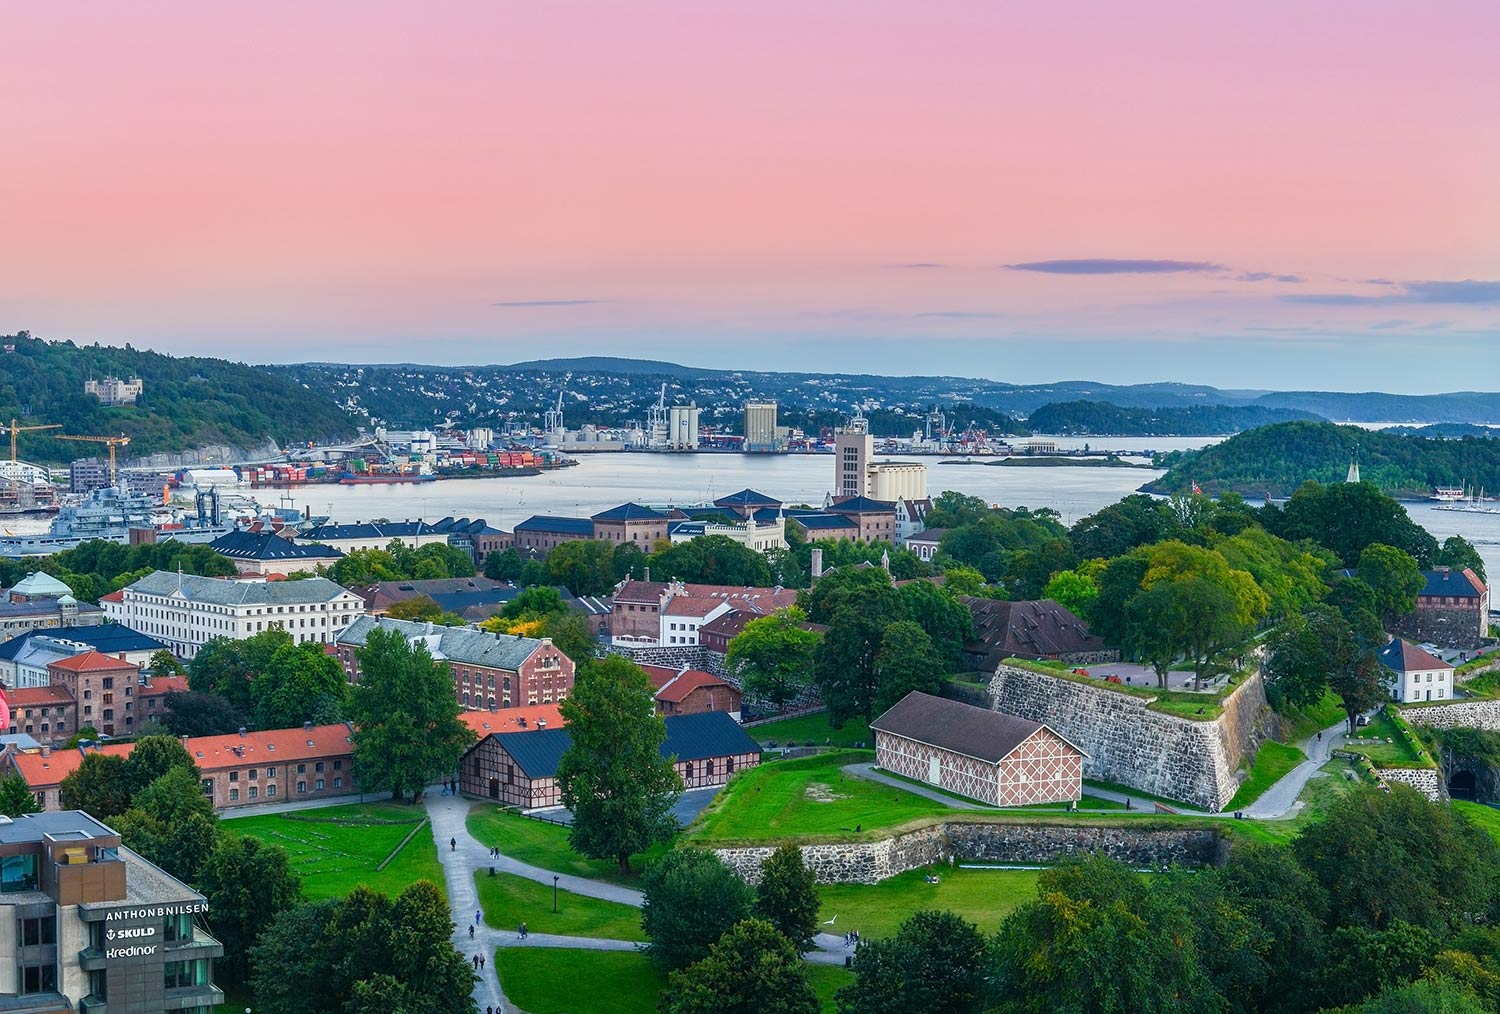 Aerial view of Oslo illuminated by a pink and orange sky